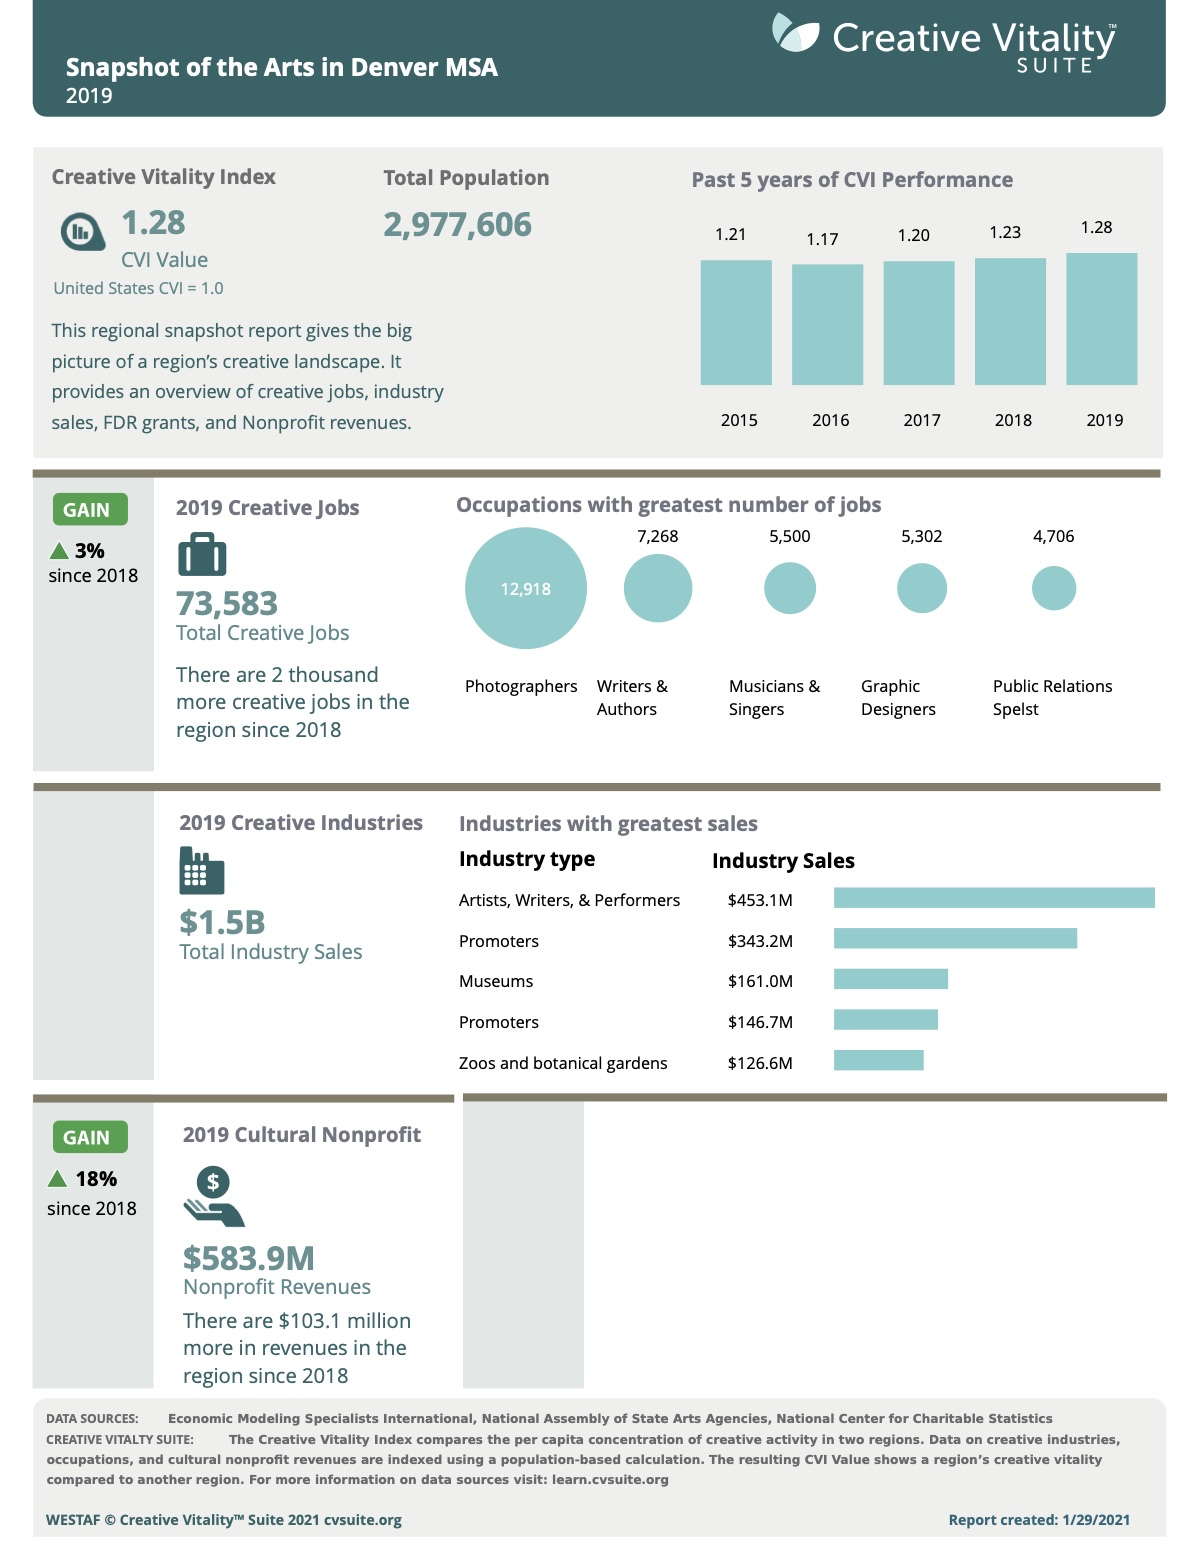 an image of the snapshot report. Highlights the CVI value for the region, number of jobs and top 5 creative occupations, the earnings for the industry and the top creative industries in the region. Last section is the nonprofit sector.